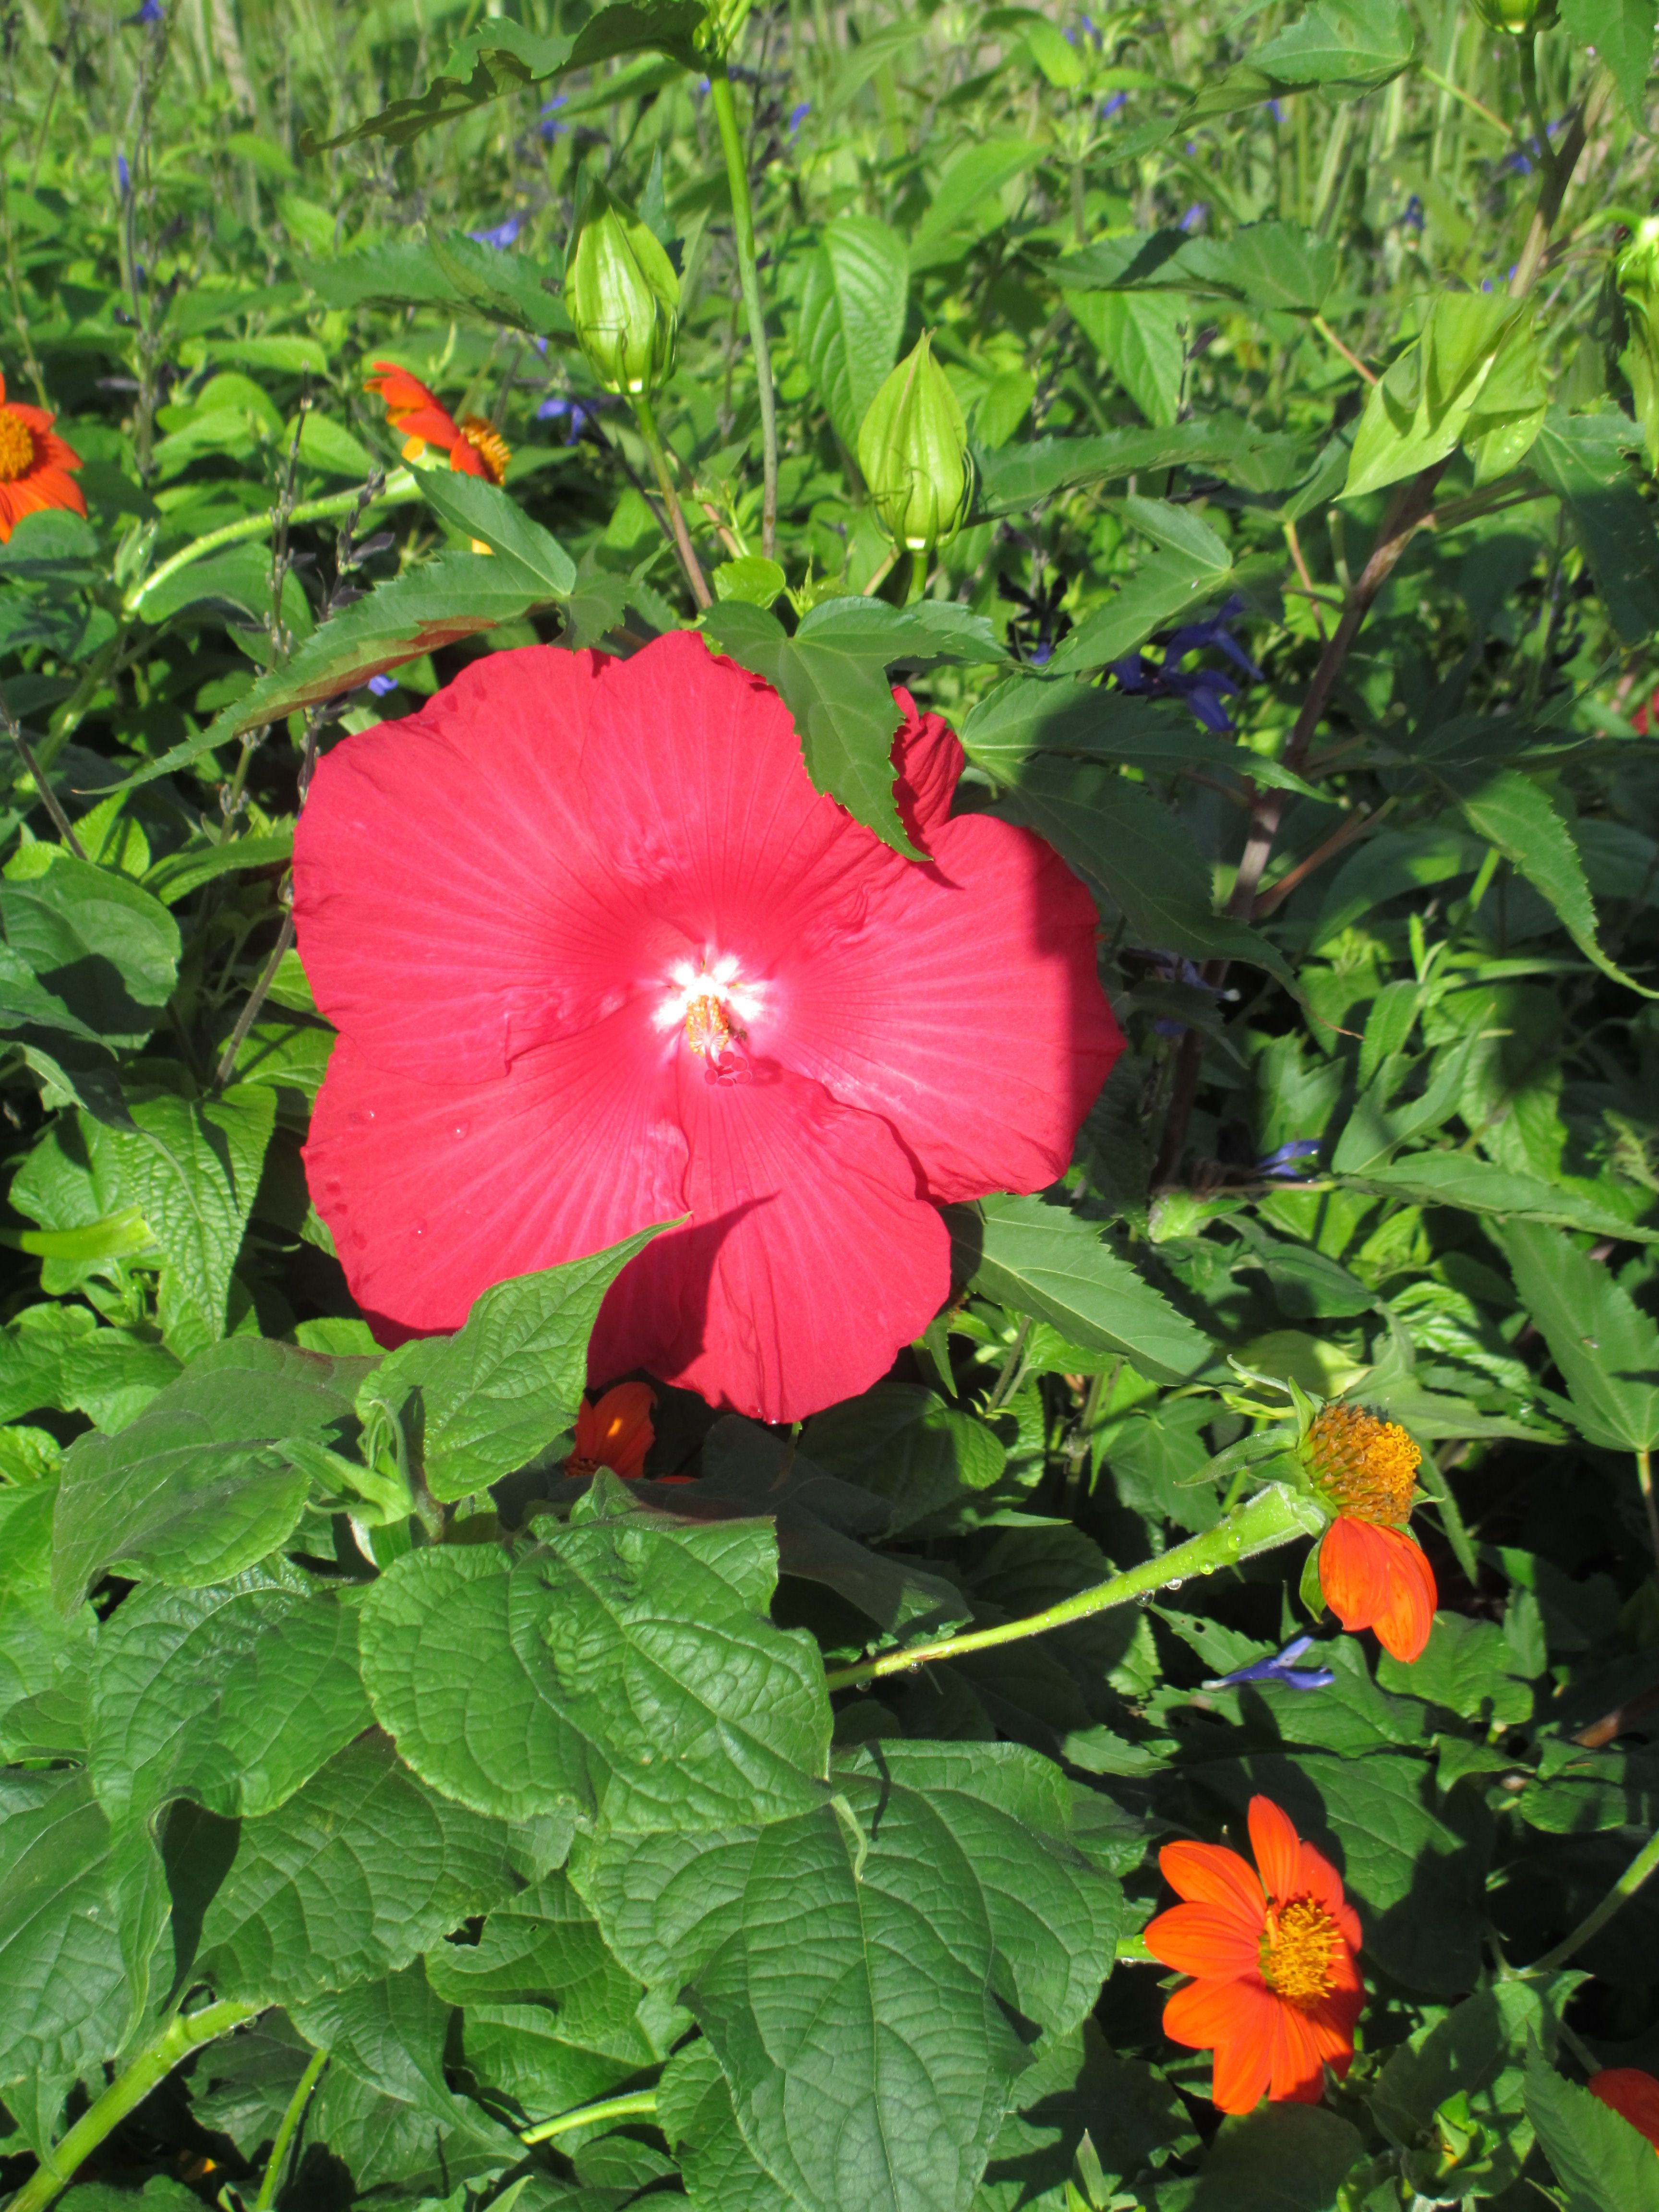 Nothing like a hibiscus for a pop of color! At Minnehaha Falls